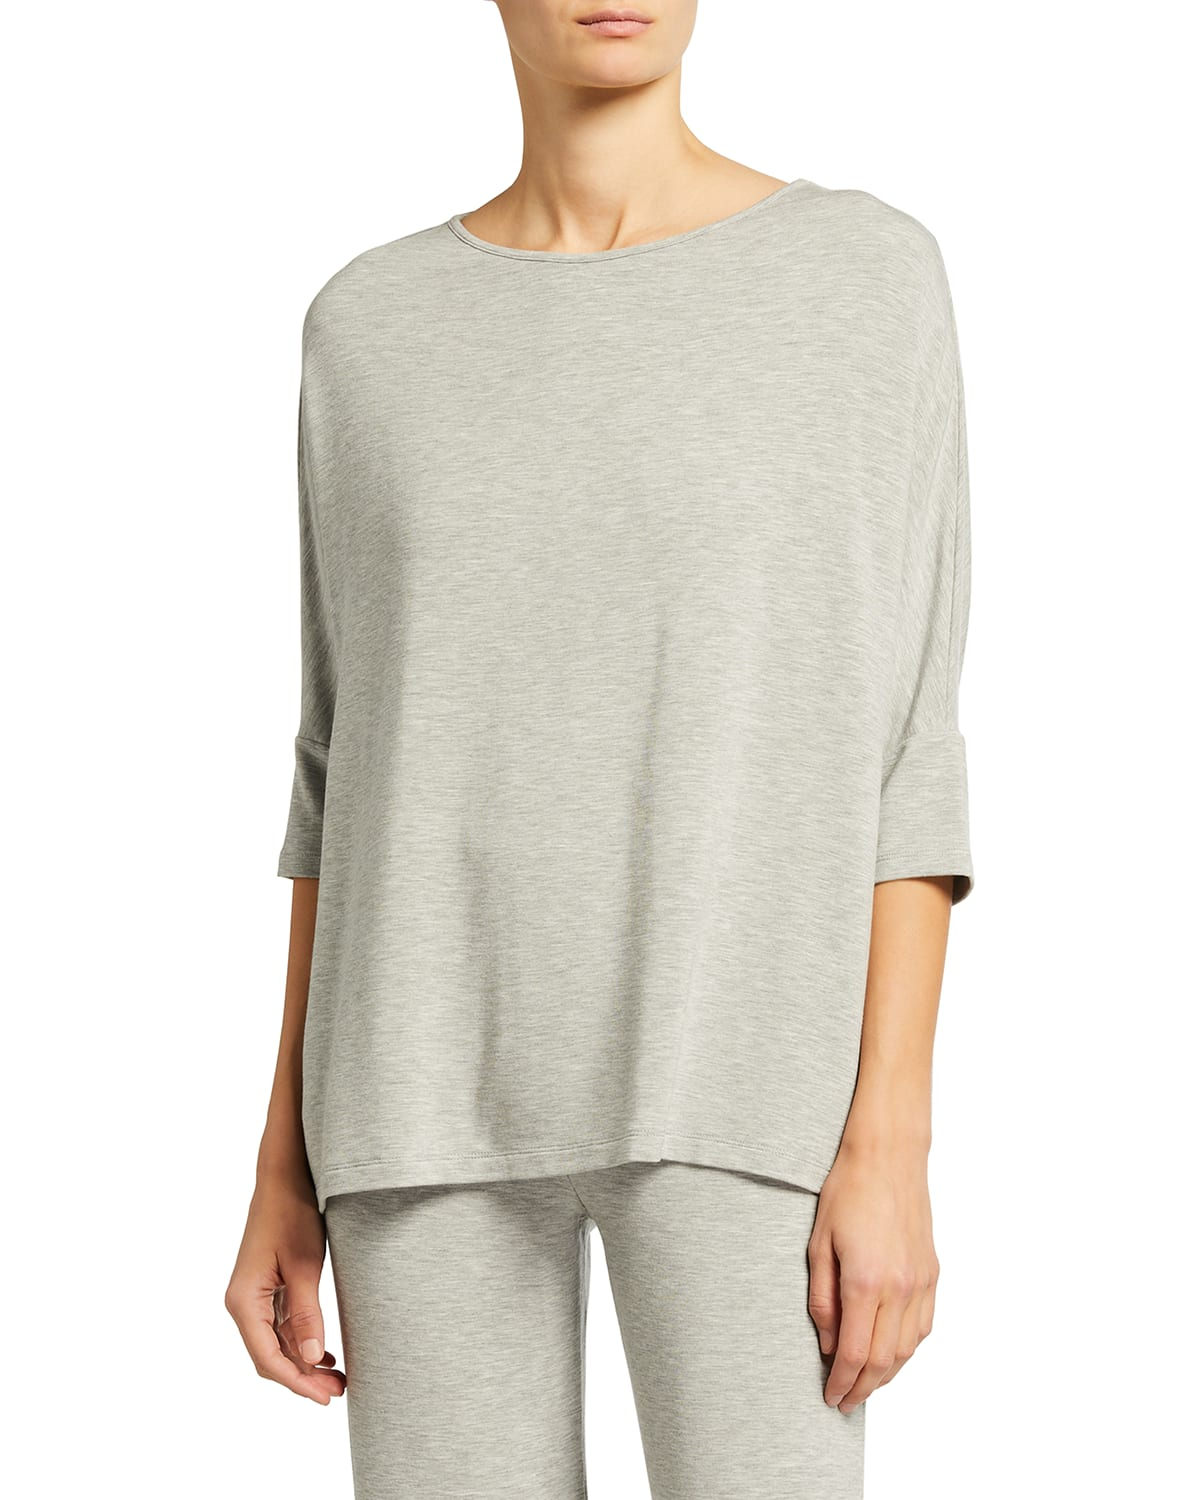 French Terry 3/4-Sleeve Boat-Neck Top